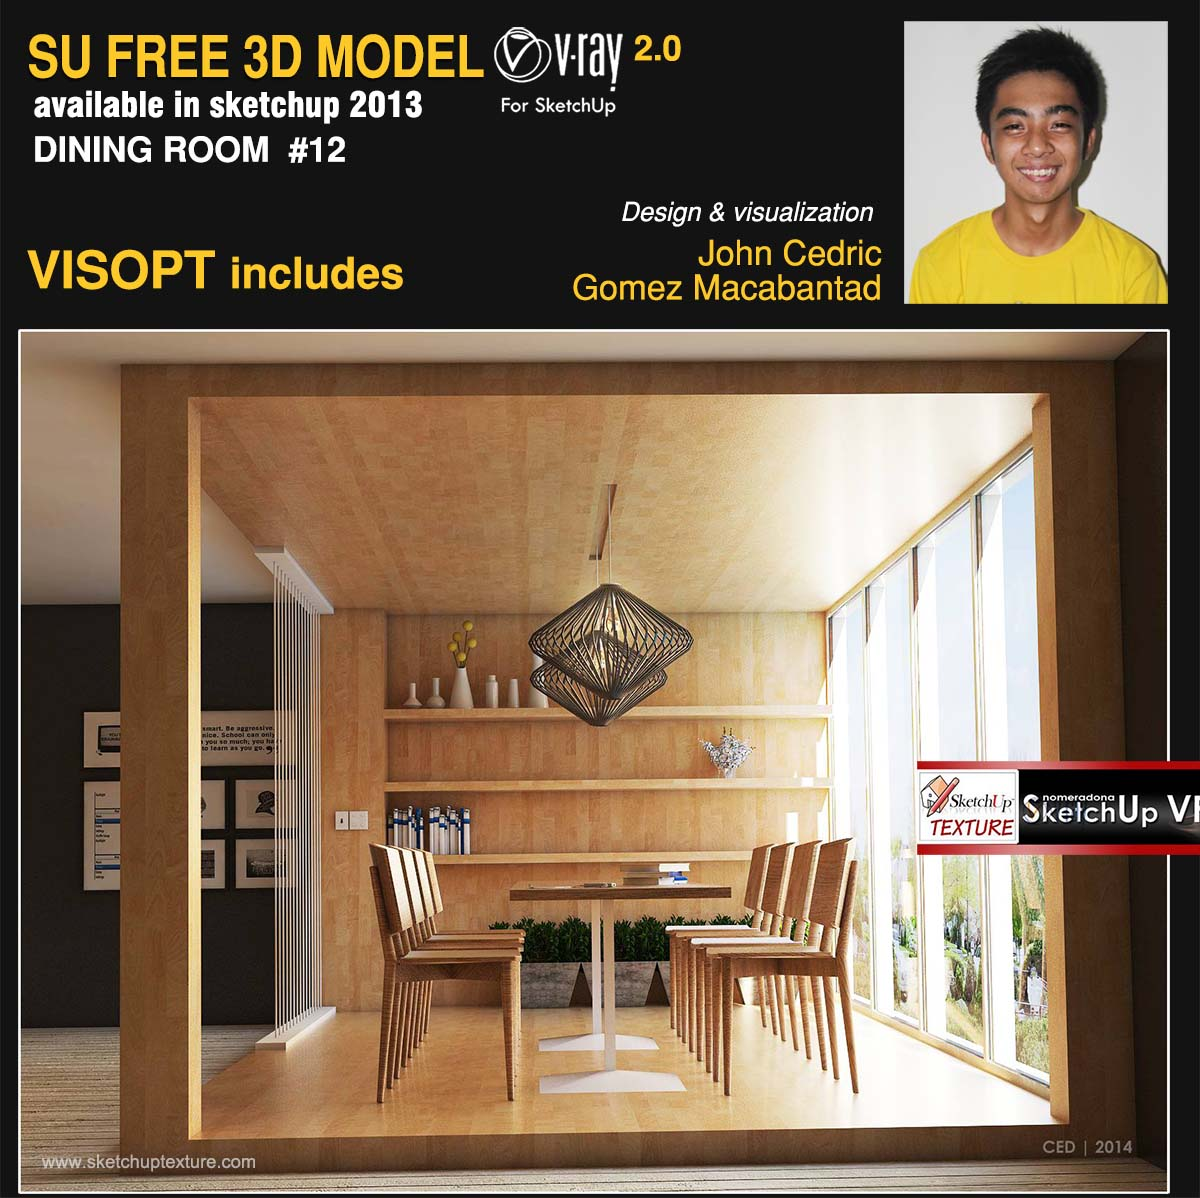 free sketchup 3d model minimalist dining room #12 by John Cedric